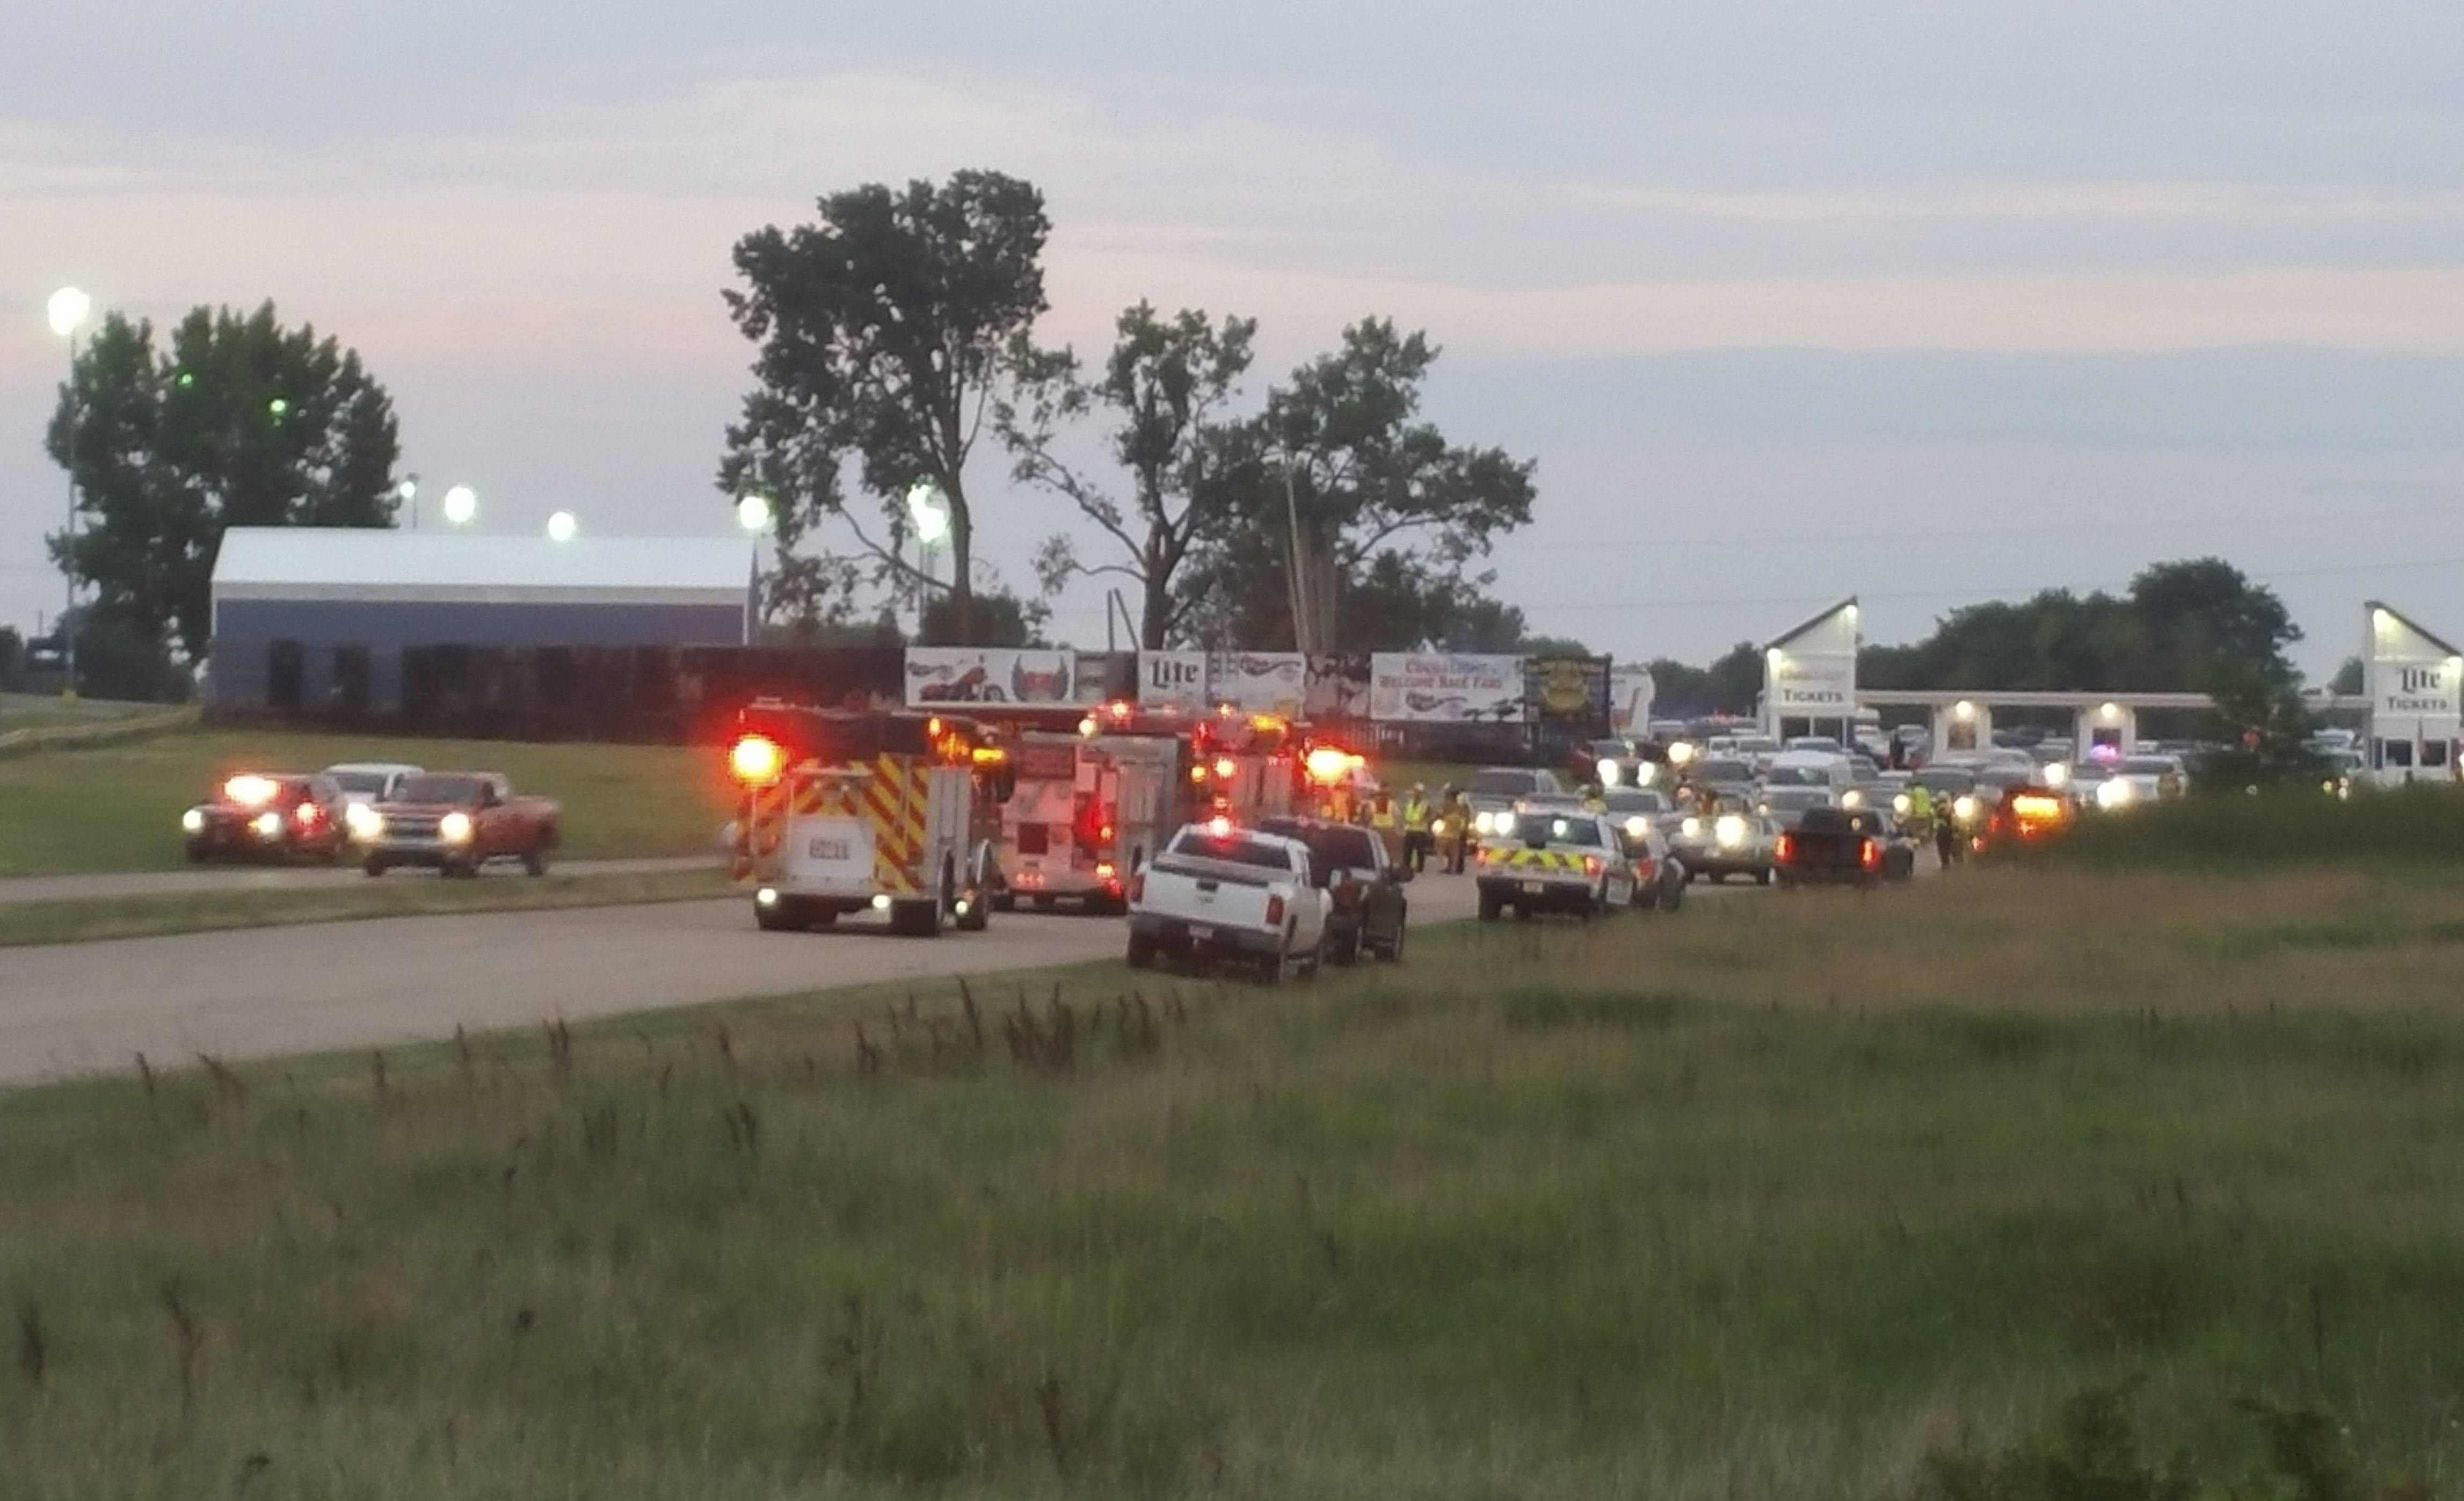 Emergency response vehicles gather at Great Lakes Dragaway on Sunday near Union Grove, Wisconsin. Three men were shot and killed during an auto racing event at the facility, a Wisconsin sheriff said. Kenosha County Sheriff David Beth said authorities responded around 7 p.m. after receiving reports about shots being fired. The three men were shot by another man at point-blank range near a food vendor, Beth said at a news conference Sunday night. No suspects were arrested and no one else was injured.